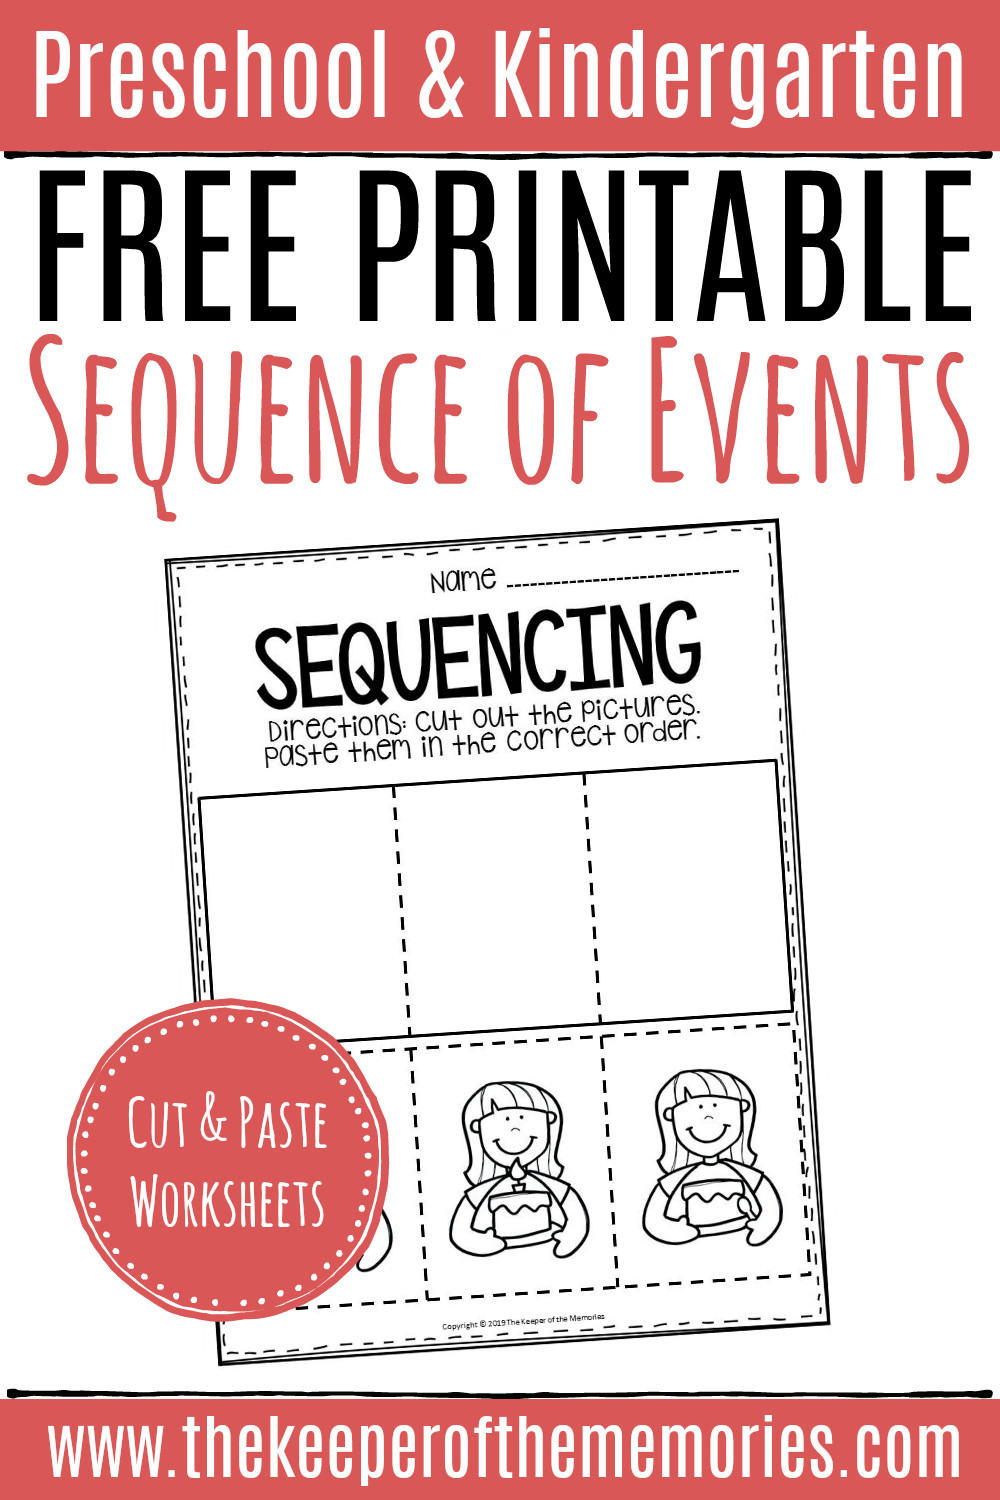 Free Printable Story Sequencing Worksheets Free Printable Sequence Of events Worksheets